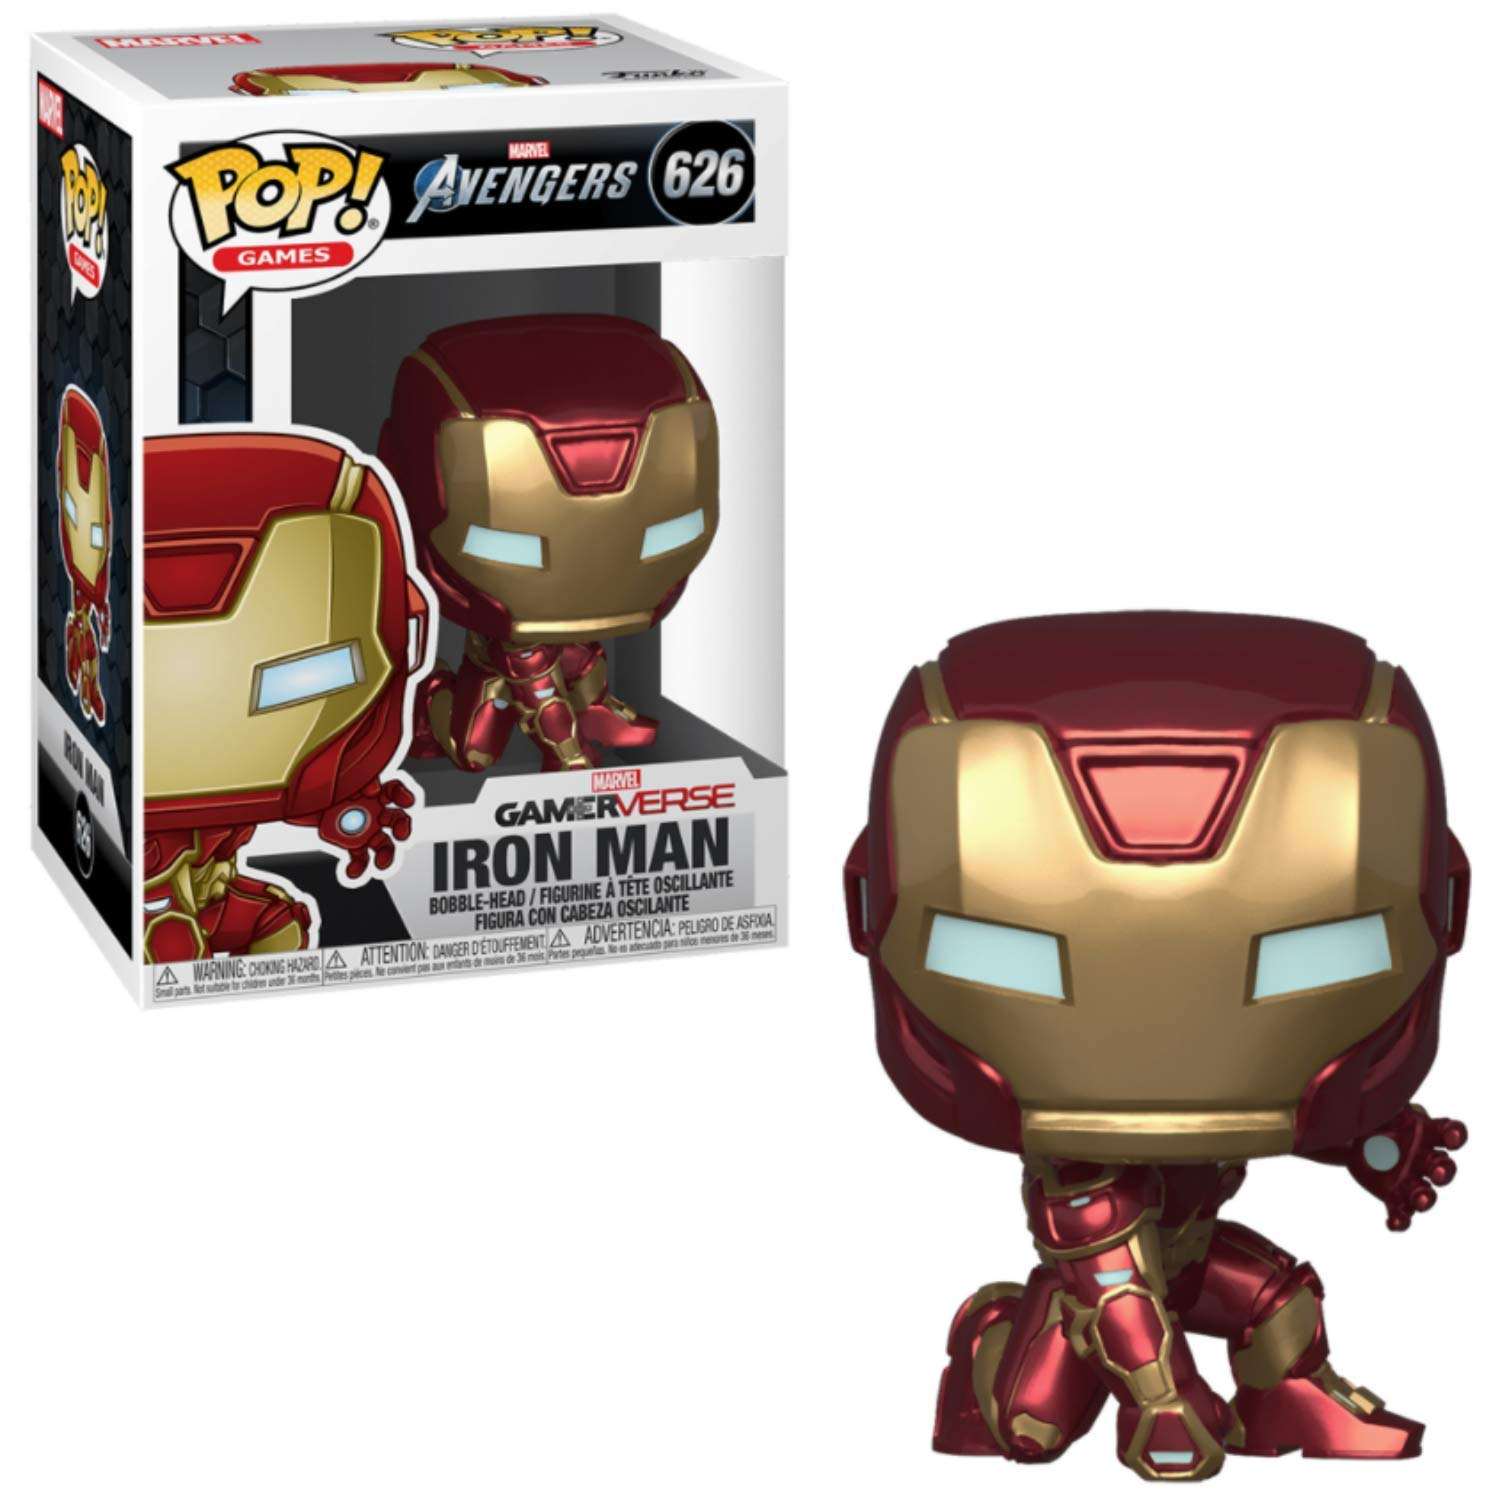 AVENGERS FUNKO POP 626 IRON MAN GAMERVERSE STARK TECH SUIT FIGURE TONY 9 CM